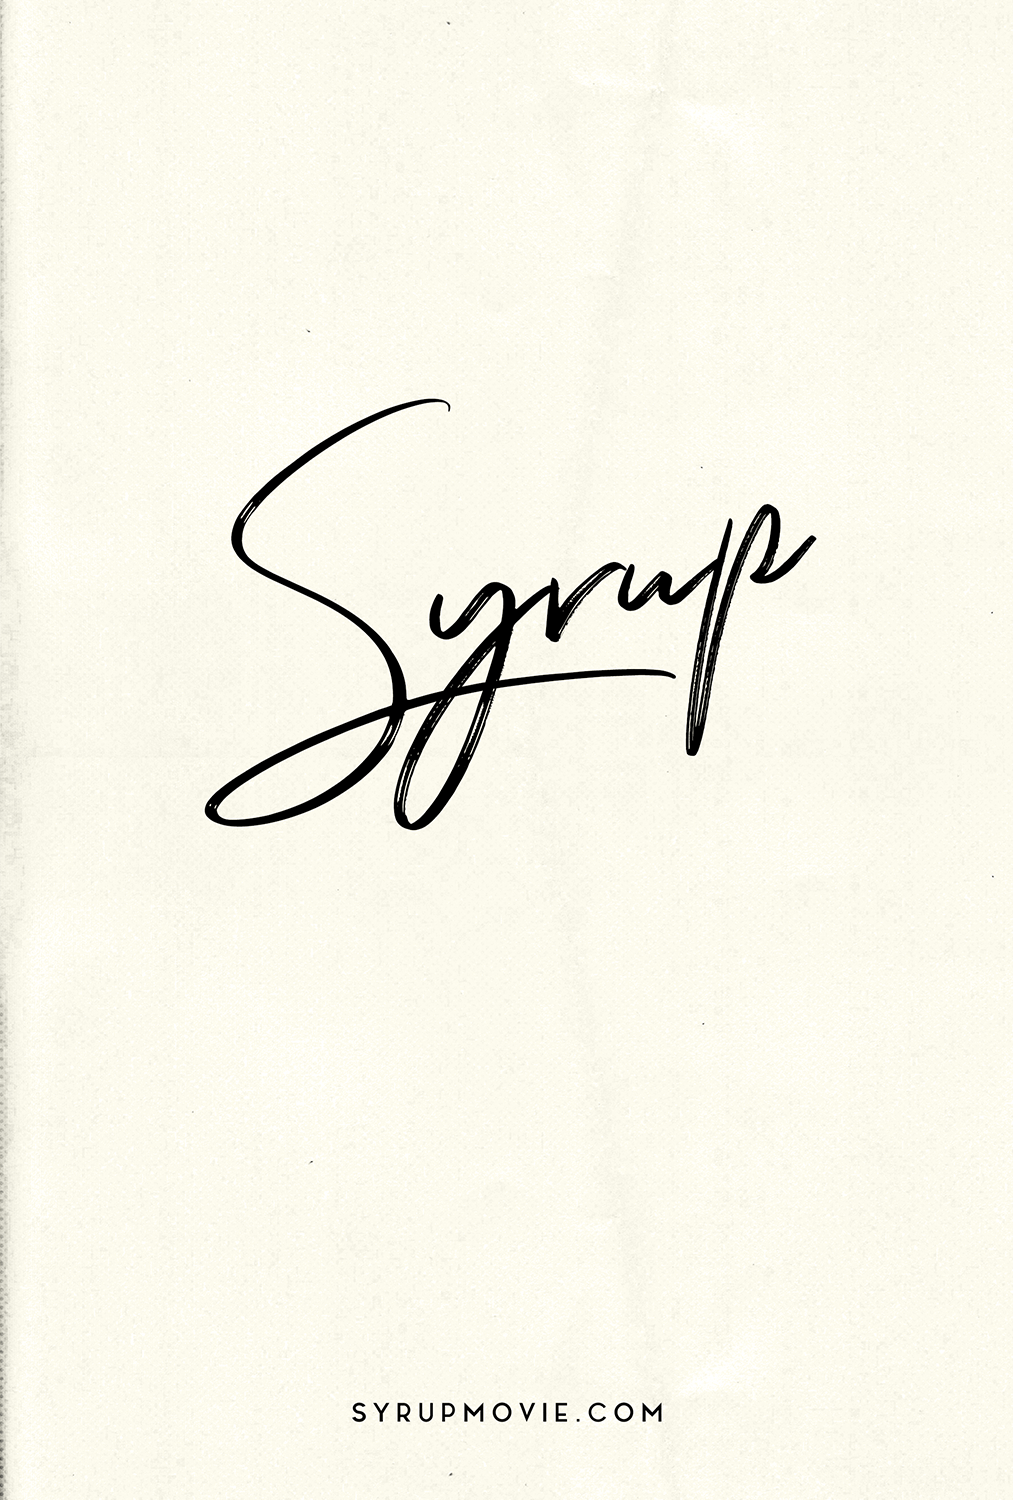 """Syrup"" a feature film written and directed by Director Alexa Green"